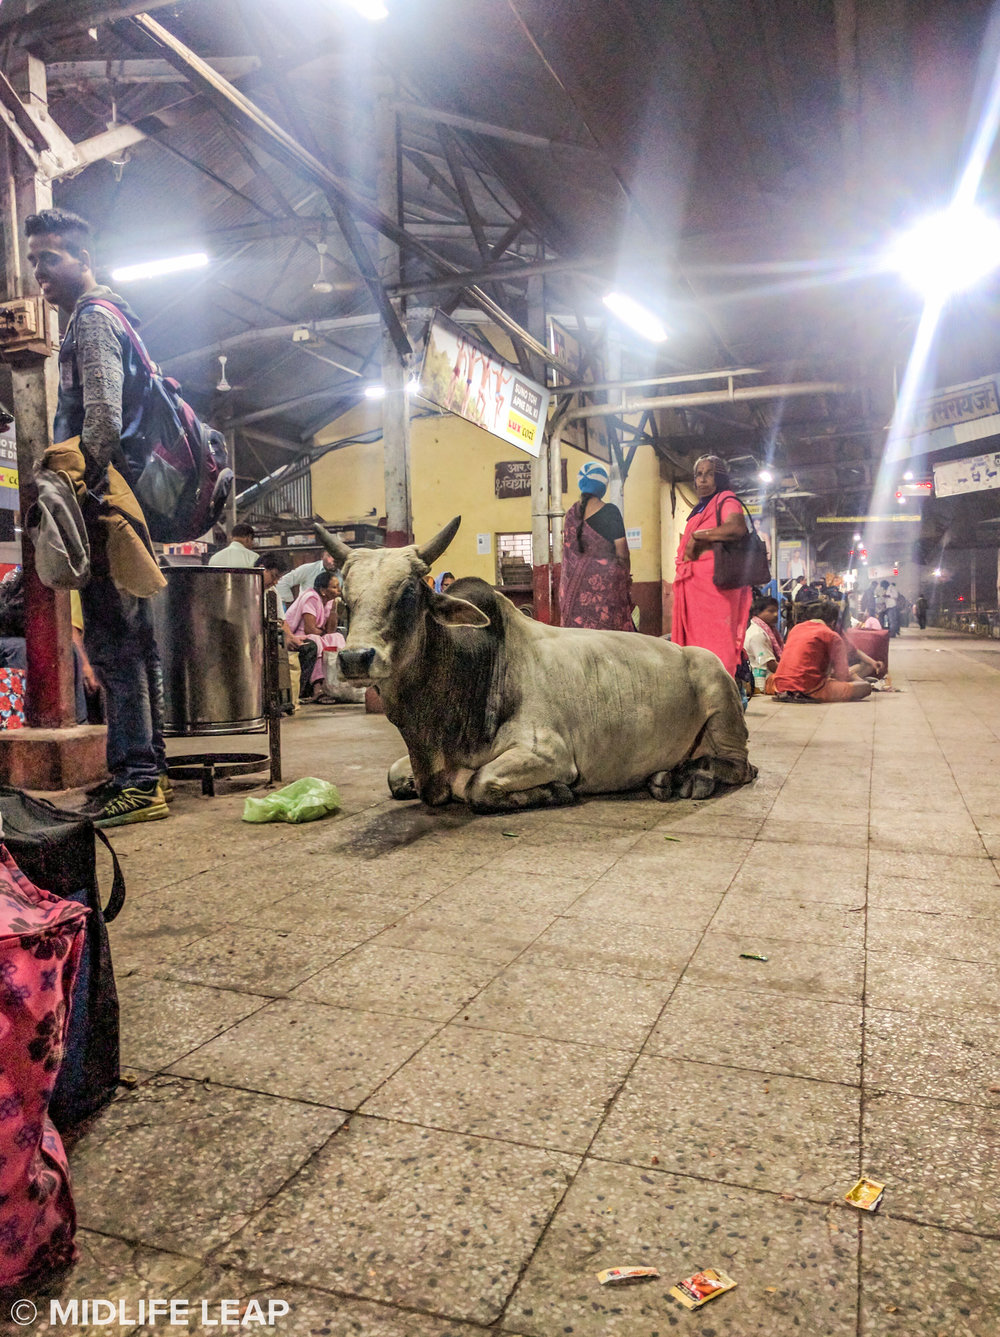 Waiting on the train in Varanasi